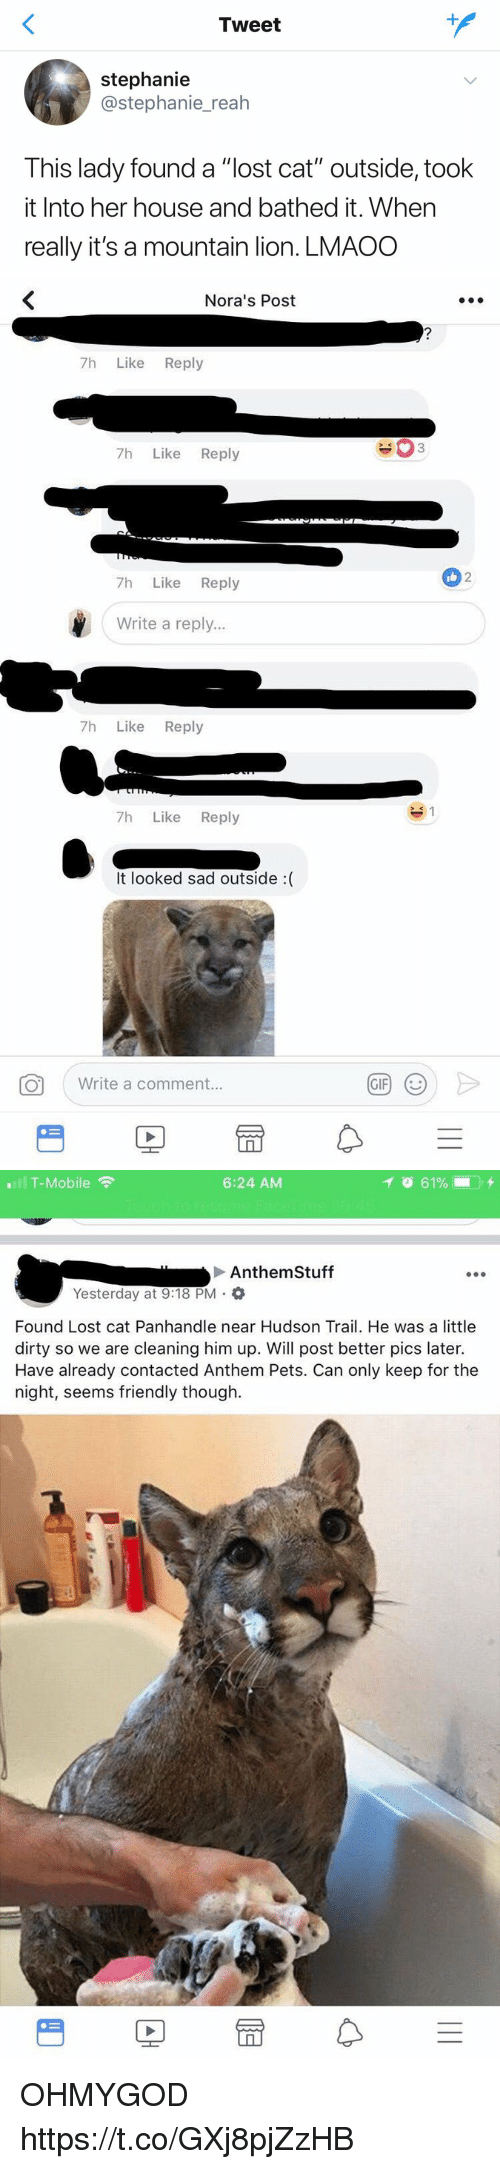 """Gif, T-Mobile, and Lost: Tweet  stephanie  @stephanie_reah  This lady found a """"lost cat"""" outside, took  it Into her house and bathed it. When  really it's a mountain lion. LMAOO   Nora's Post  7h Like Reply  7h Like Reply  2  7h Like Reply  Write a reply...  7h Like Reply  7h Like Reply  It looked sad outside :(  。  ( Write a comment.  GIF)  (じ   T-Mobile  6:24 AM  Anthem Stuff  Yesterday at 9:18 PM .  Found Lost cat Panhandle near Hudson Trail. He was a little  dirty so we are cleaning him up. Will post better pics later.  Have already contacted Anthem Pets. Can only keep for the  night, seems friendly though.  rt OHMYGOD https://t.co/GXj8pjZzHB"""